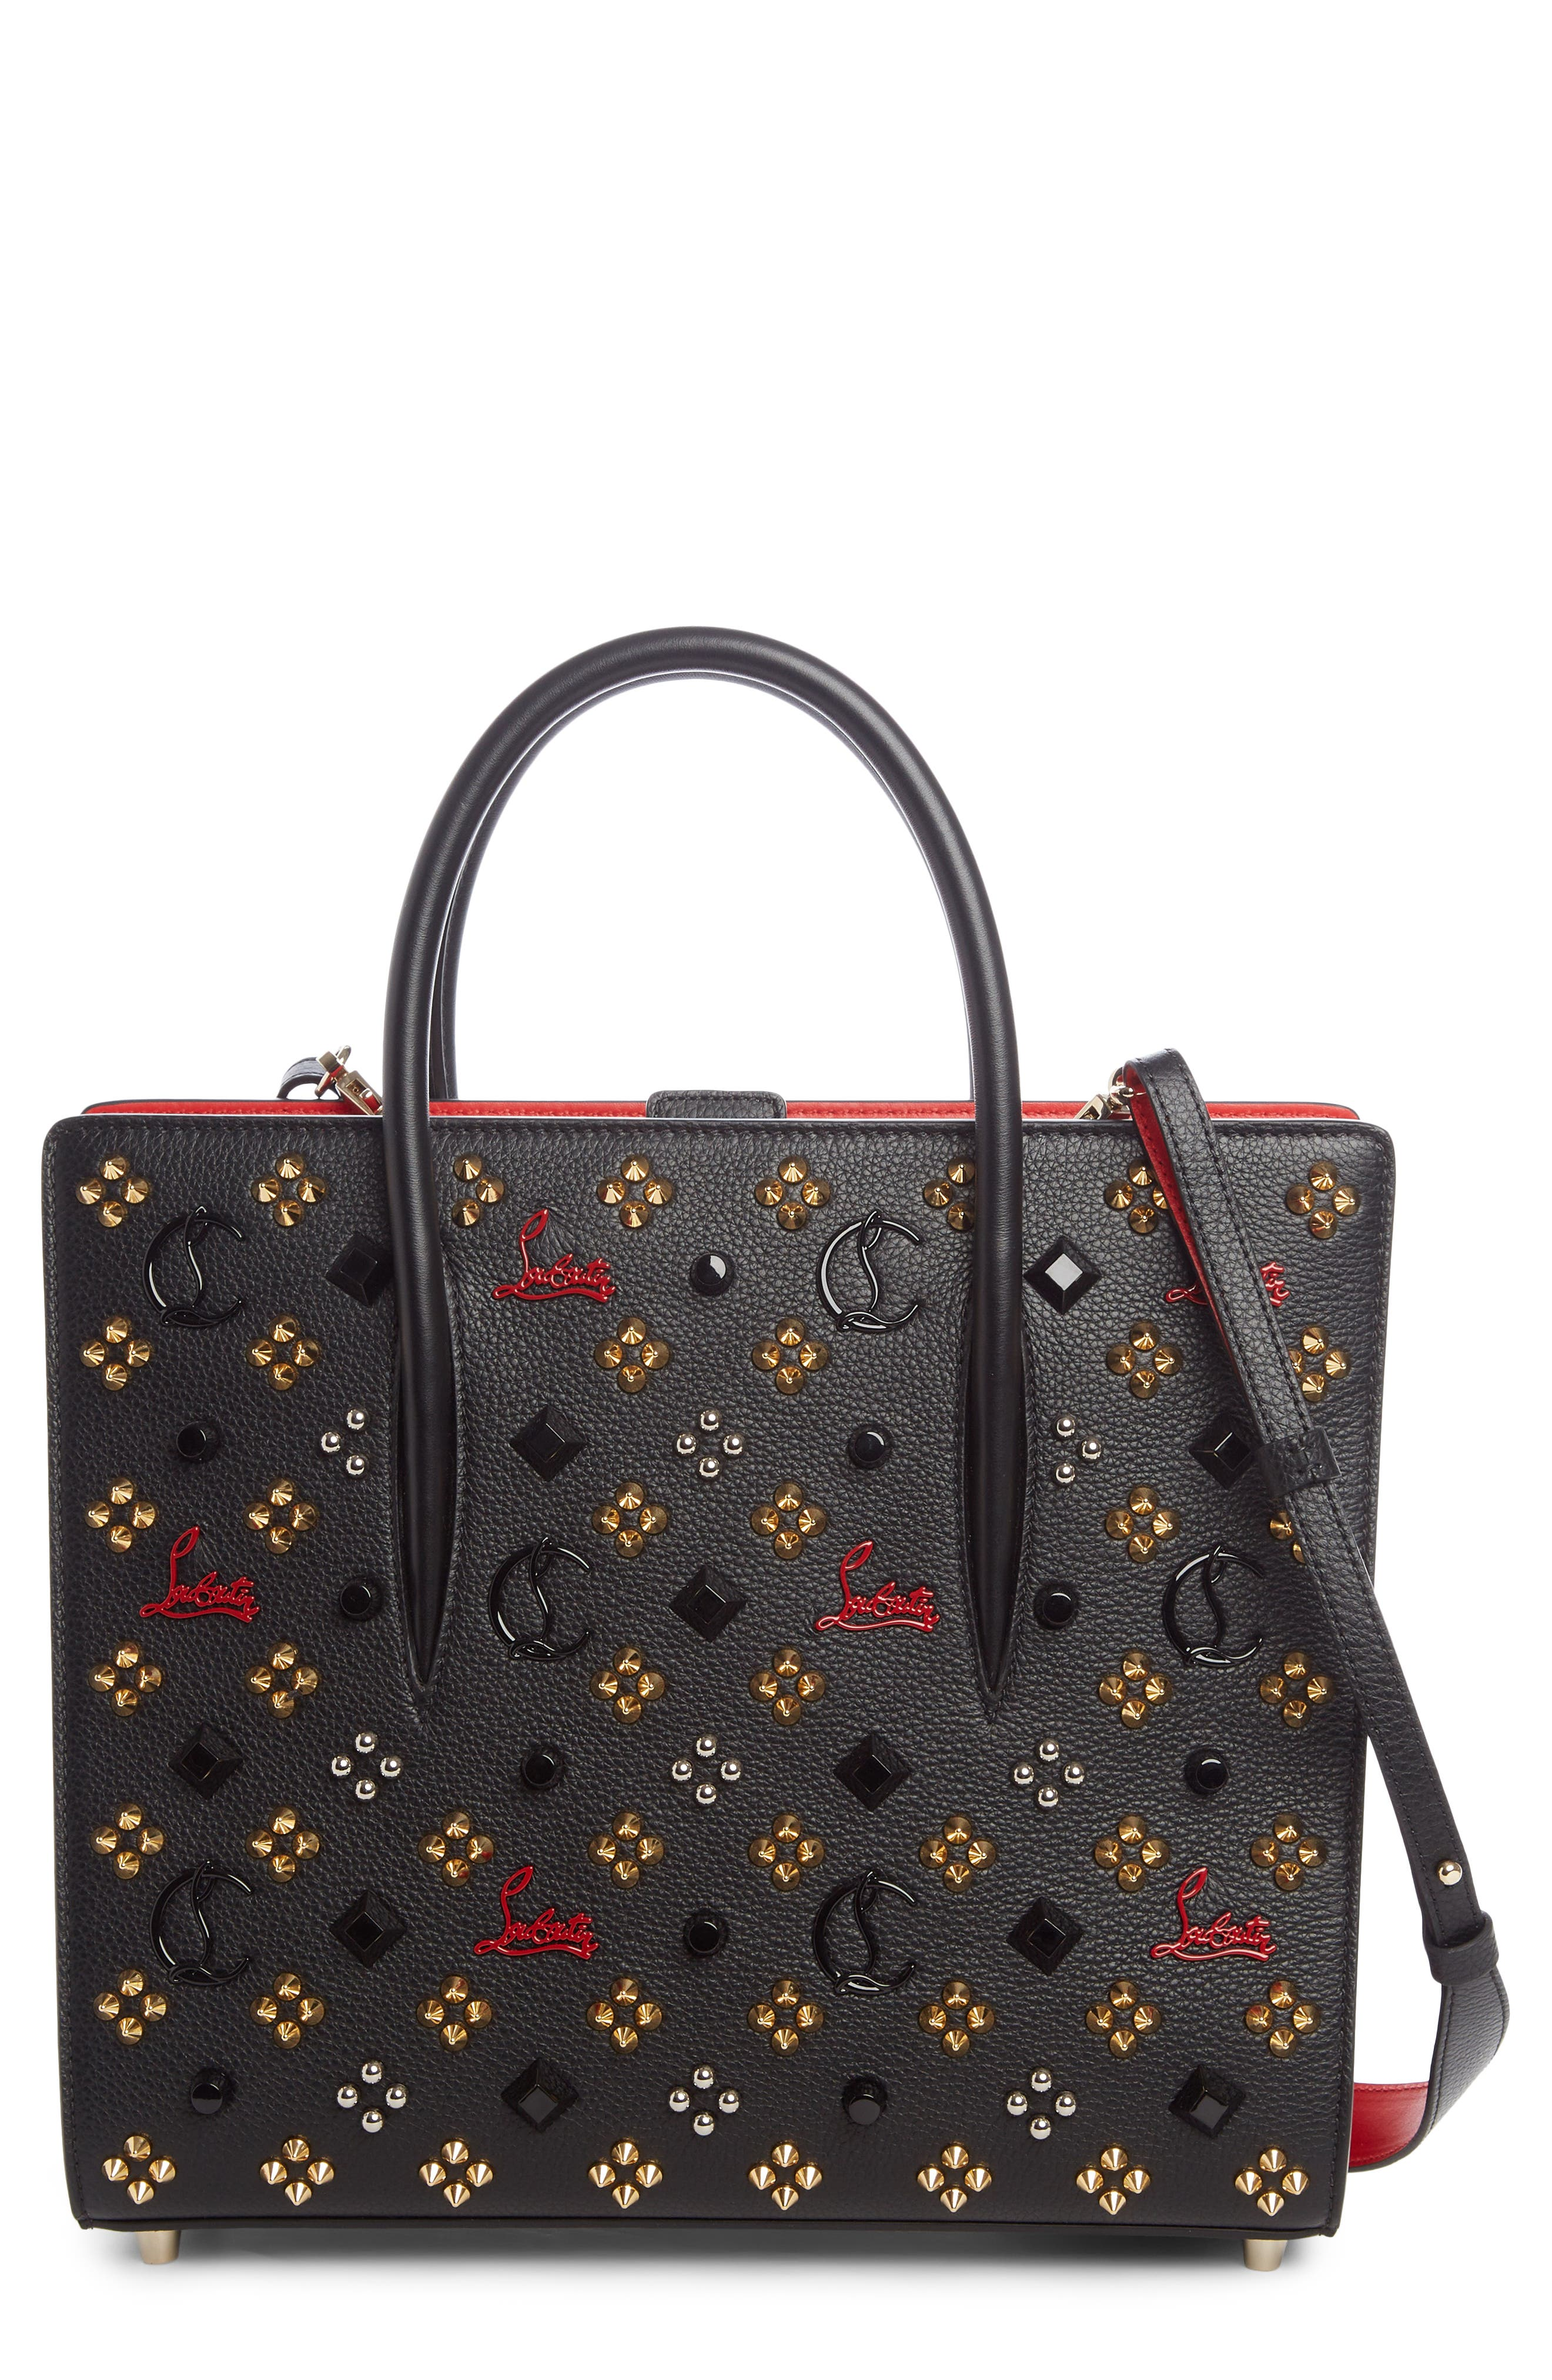 Medium Paloma Leather Tote,                         Main,                         color, Black/ Red-Gold